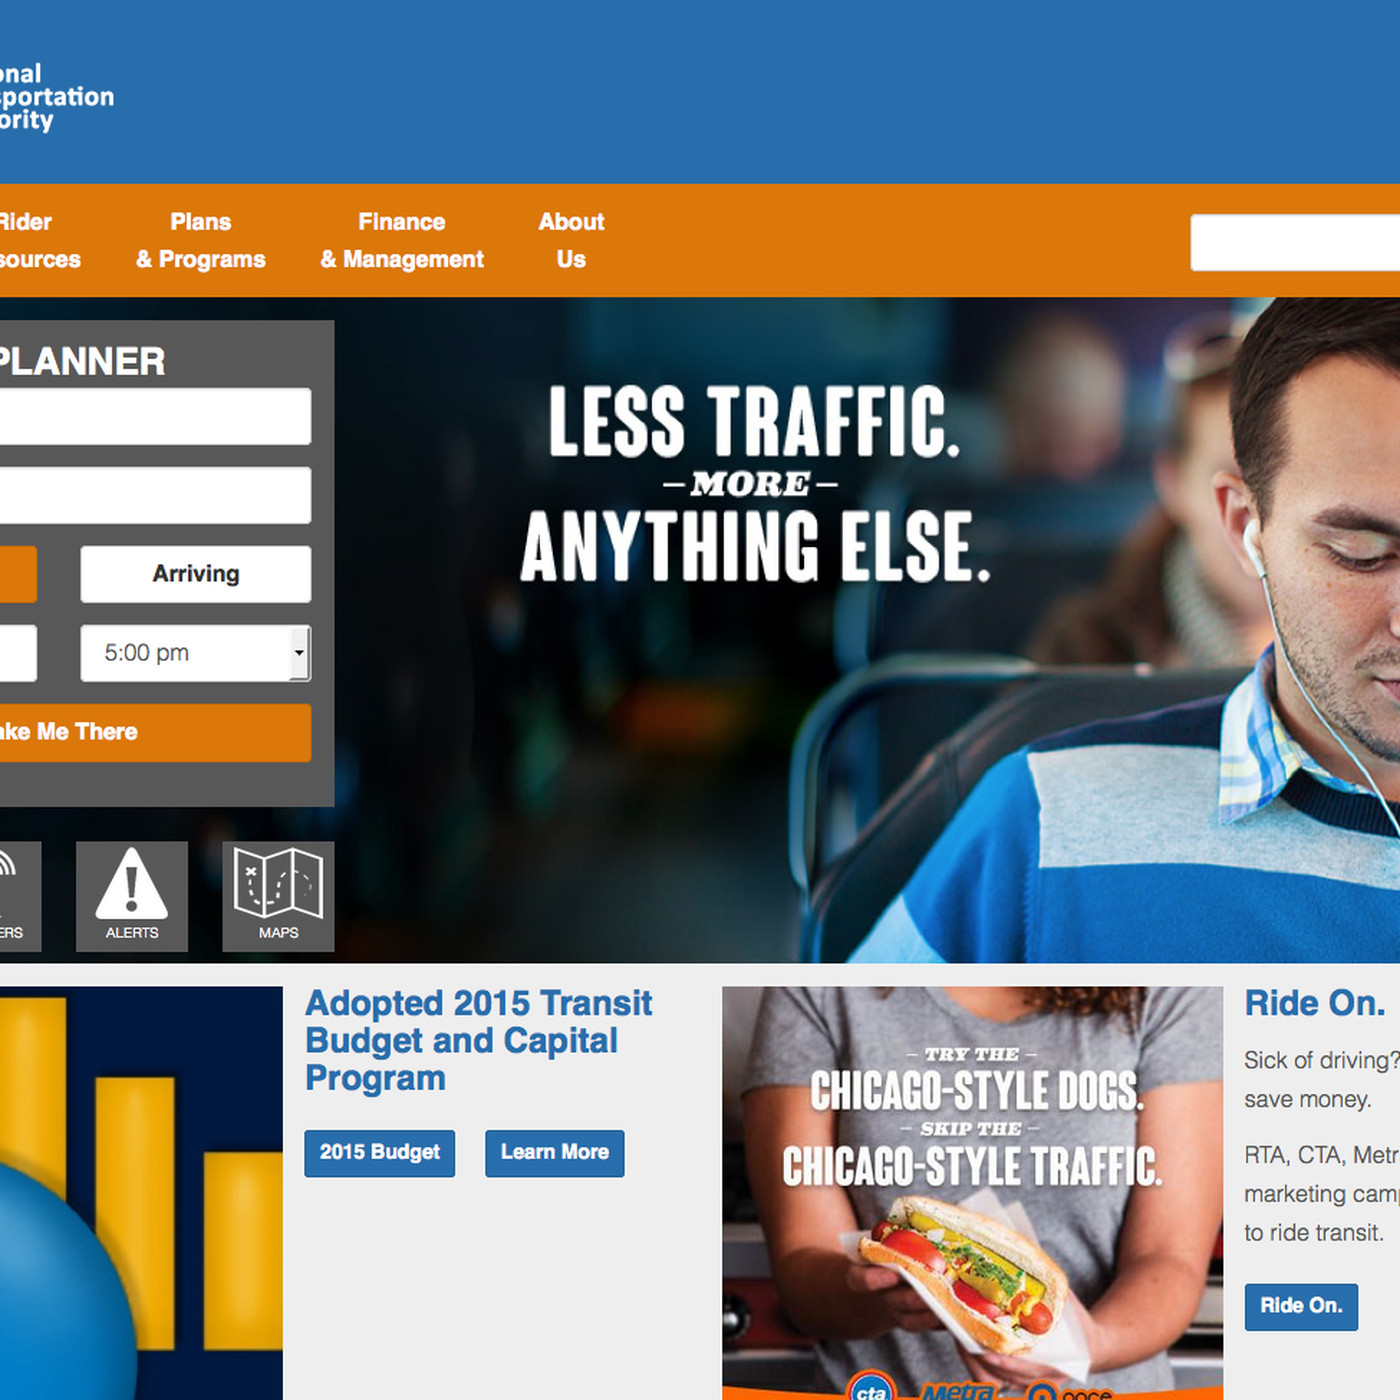 RTA launches new, mobile-friendly website - Chicago Sun-Times